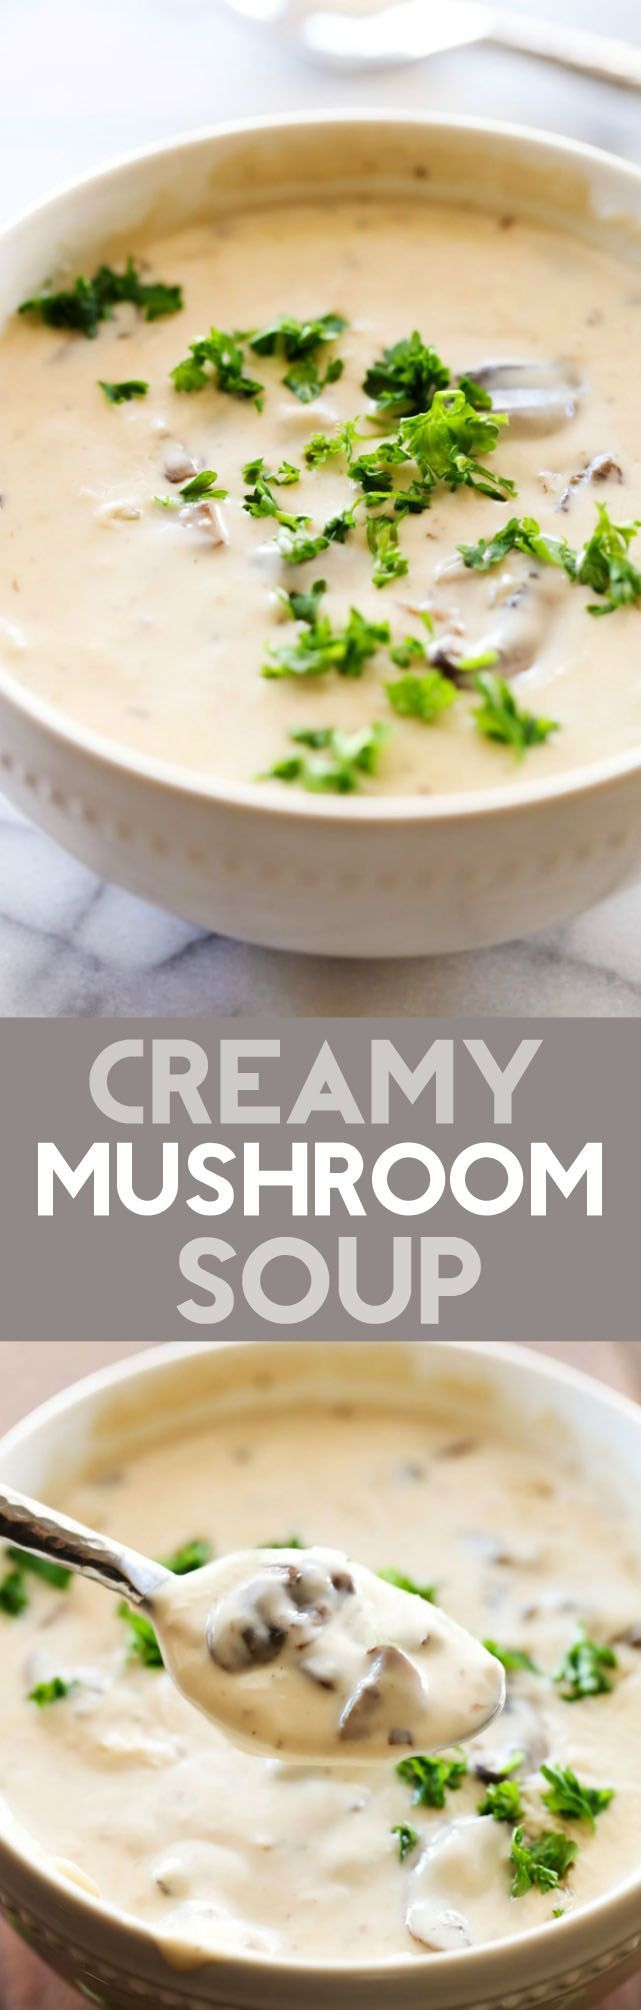 Creamy Mushroom Soup... this is a recipe that will completely wow all who try it! The flavor is undeniably delicious and the smooth texture is phenomenal!